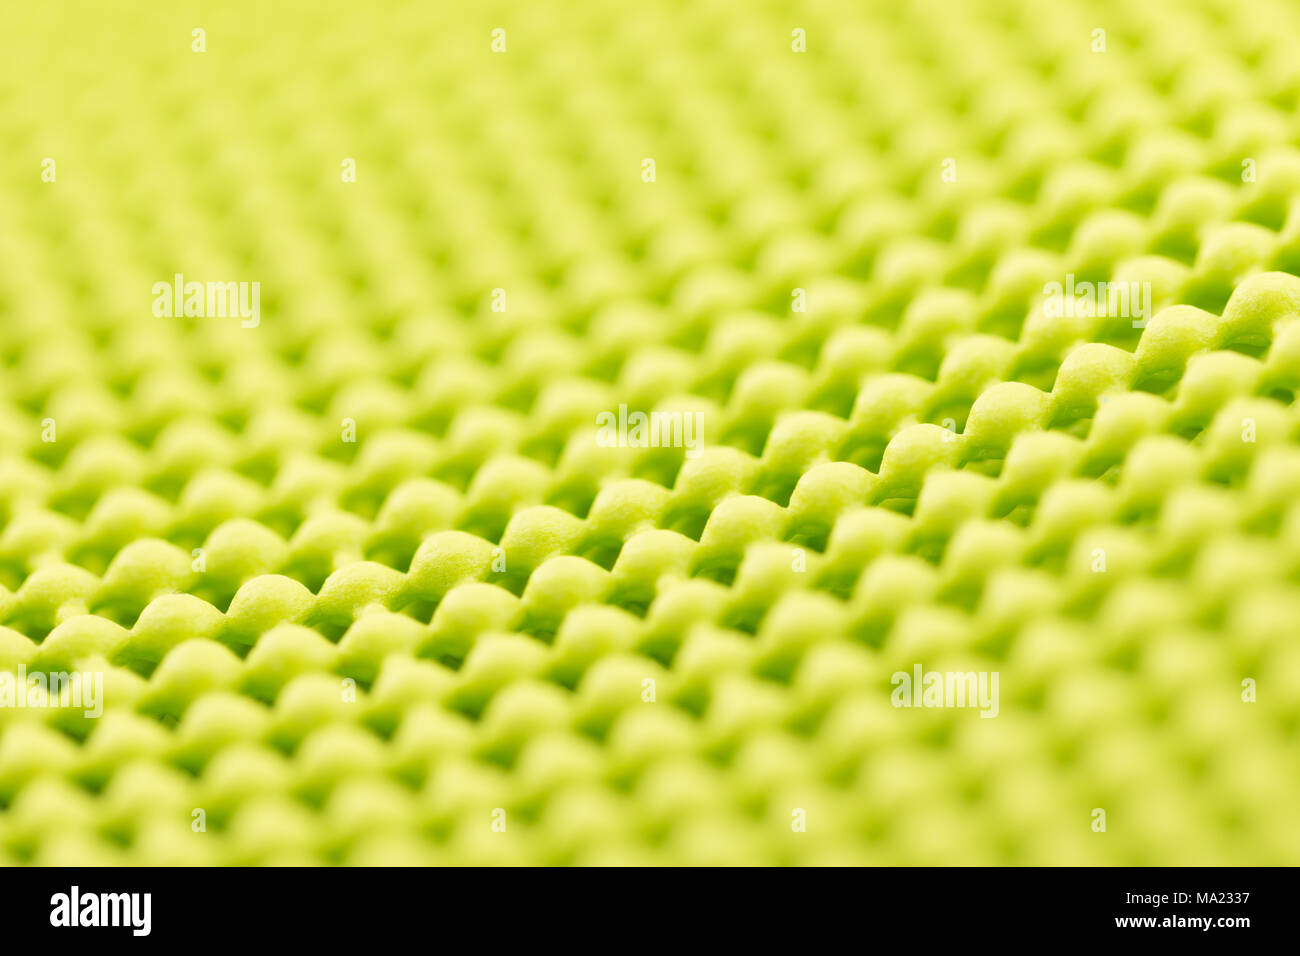 Close up detail of yellow textured non skid mat Stock Photo